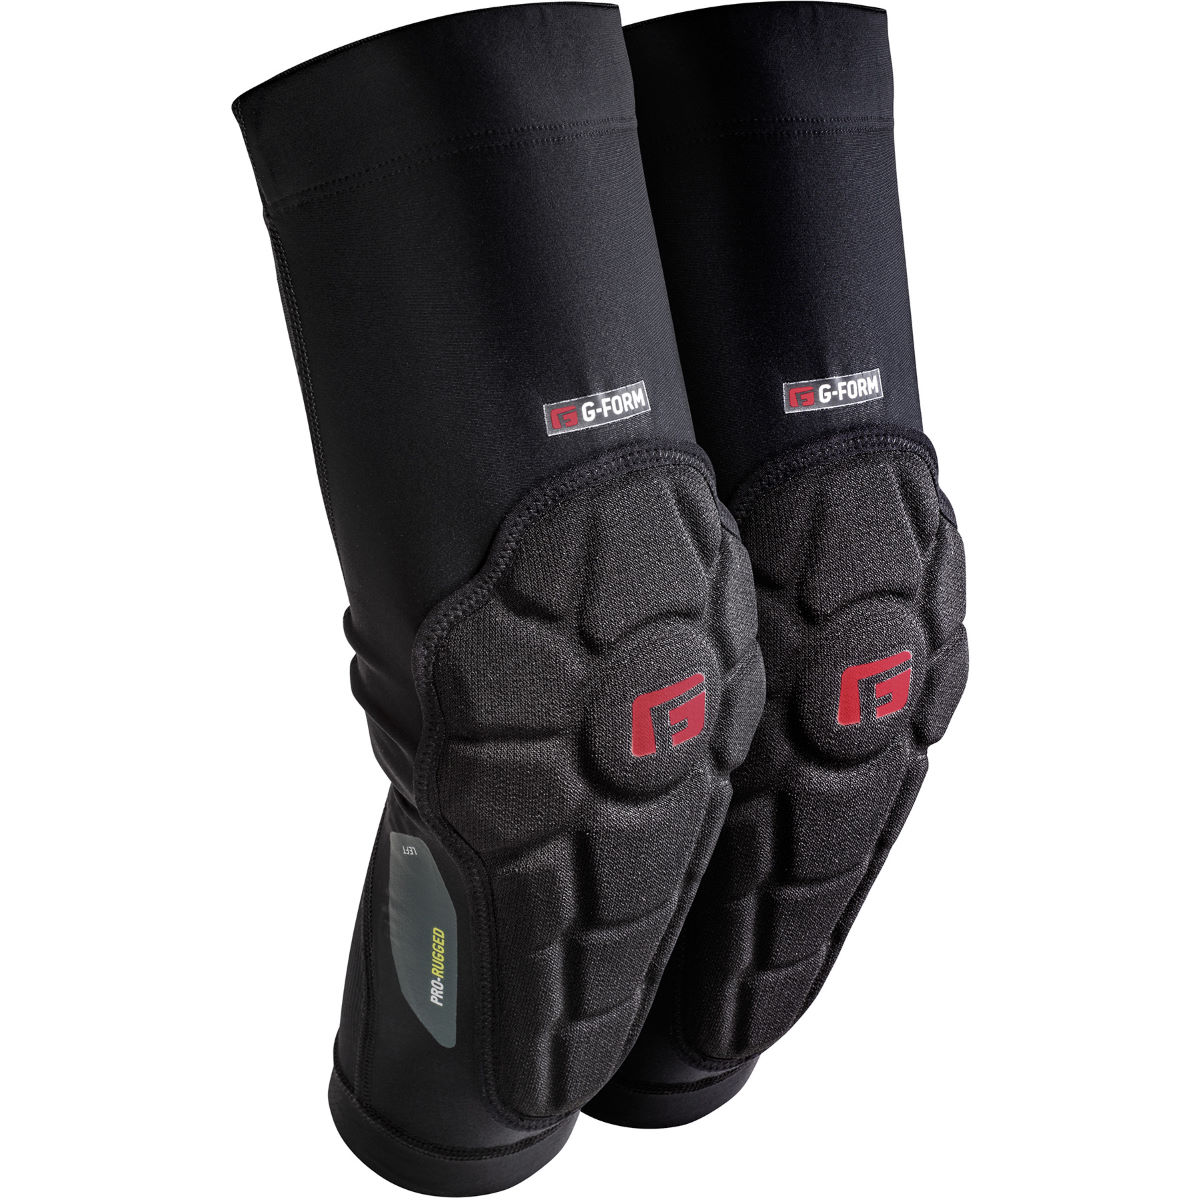 G-Form G-Form Pro Rugged Elbow Pads   Elbow Pads